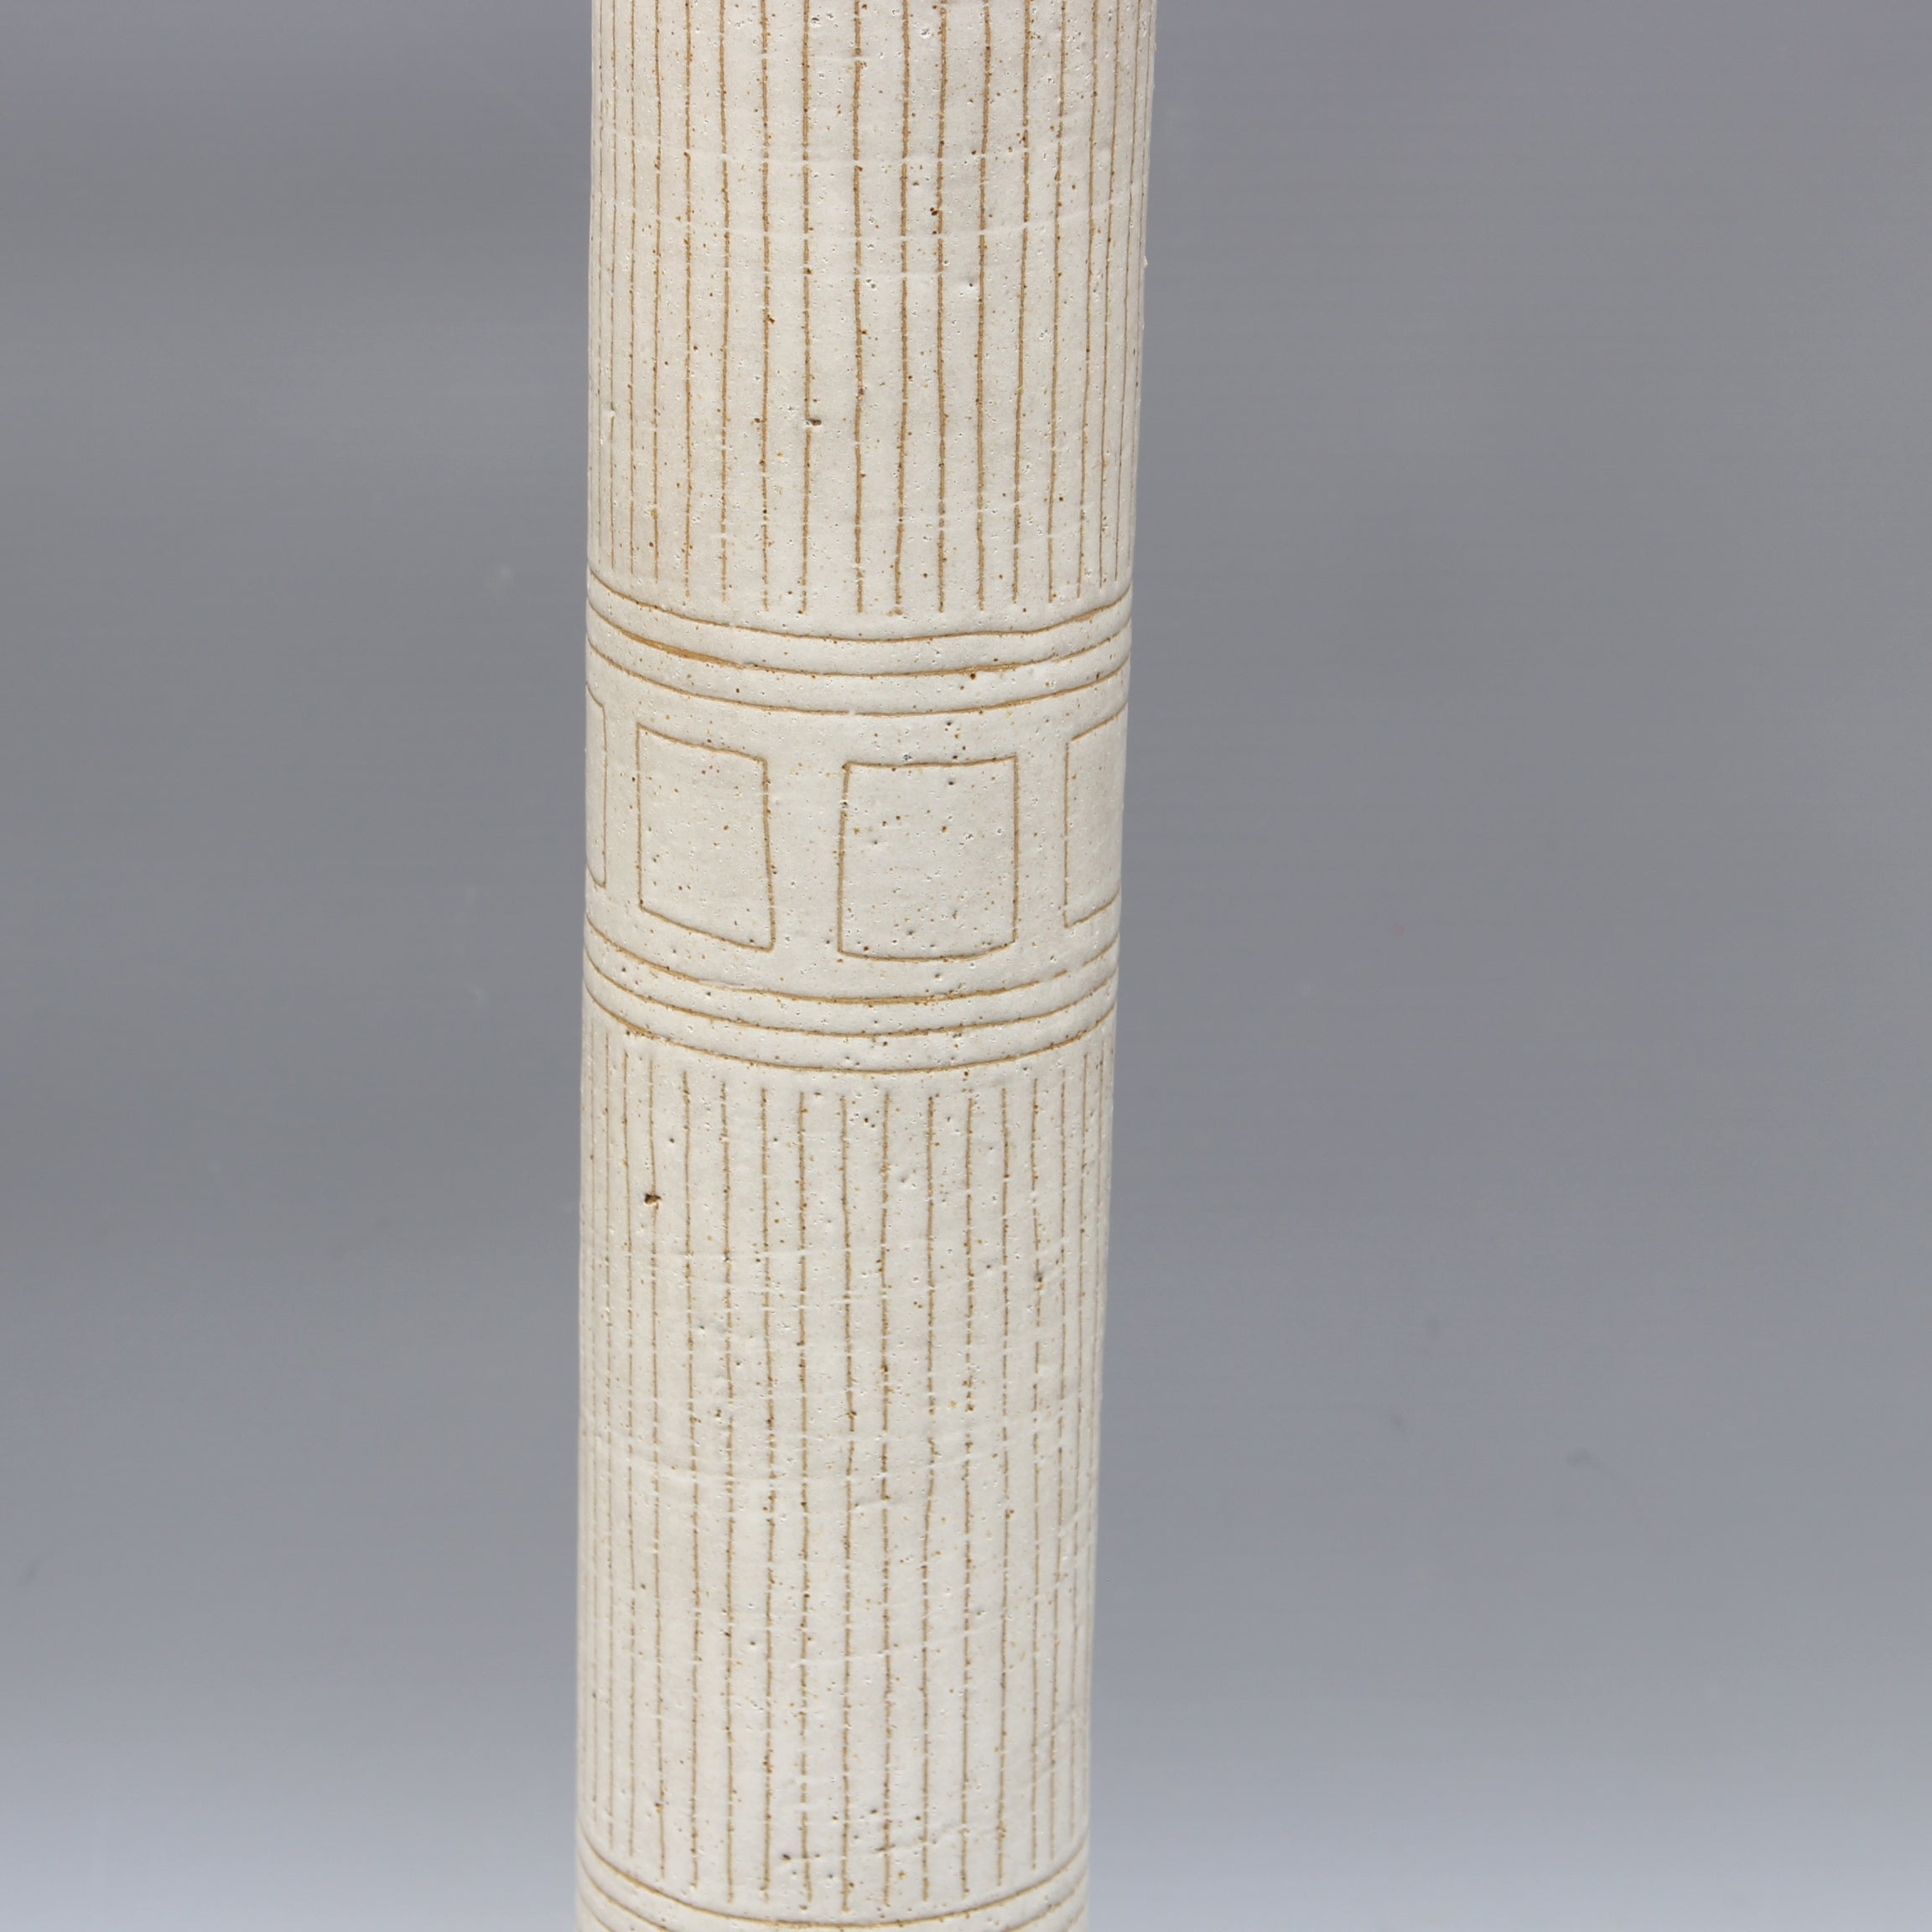 Italian Cylindrical Ceramic Vase by Bruno Gambone (circa 1970s) - Large